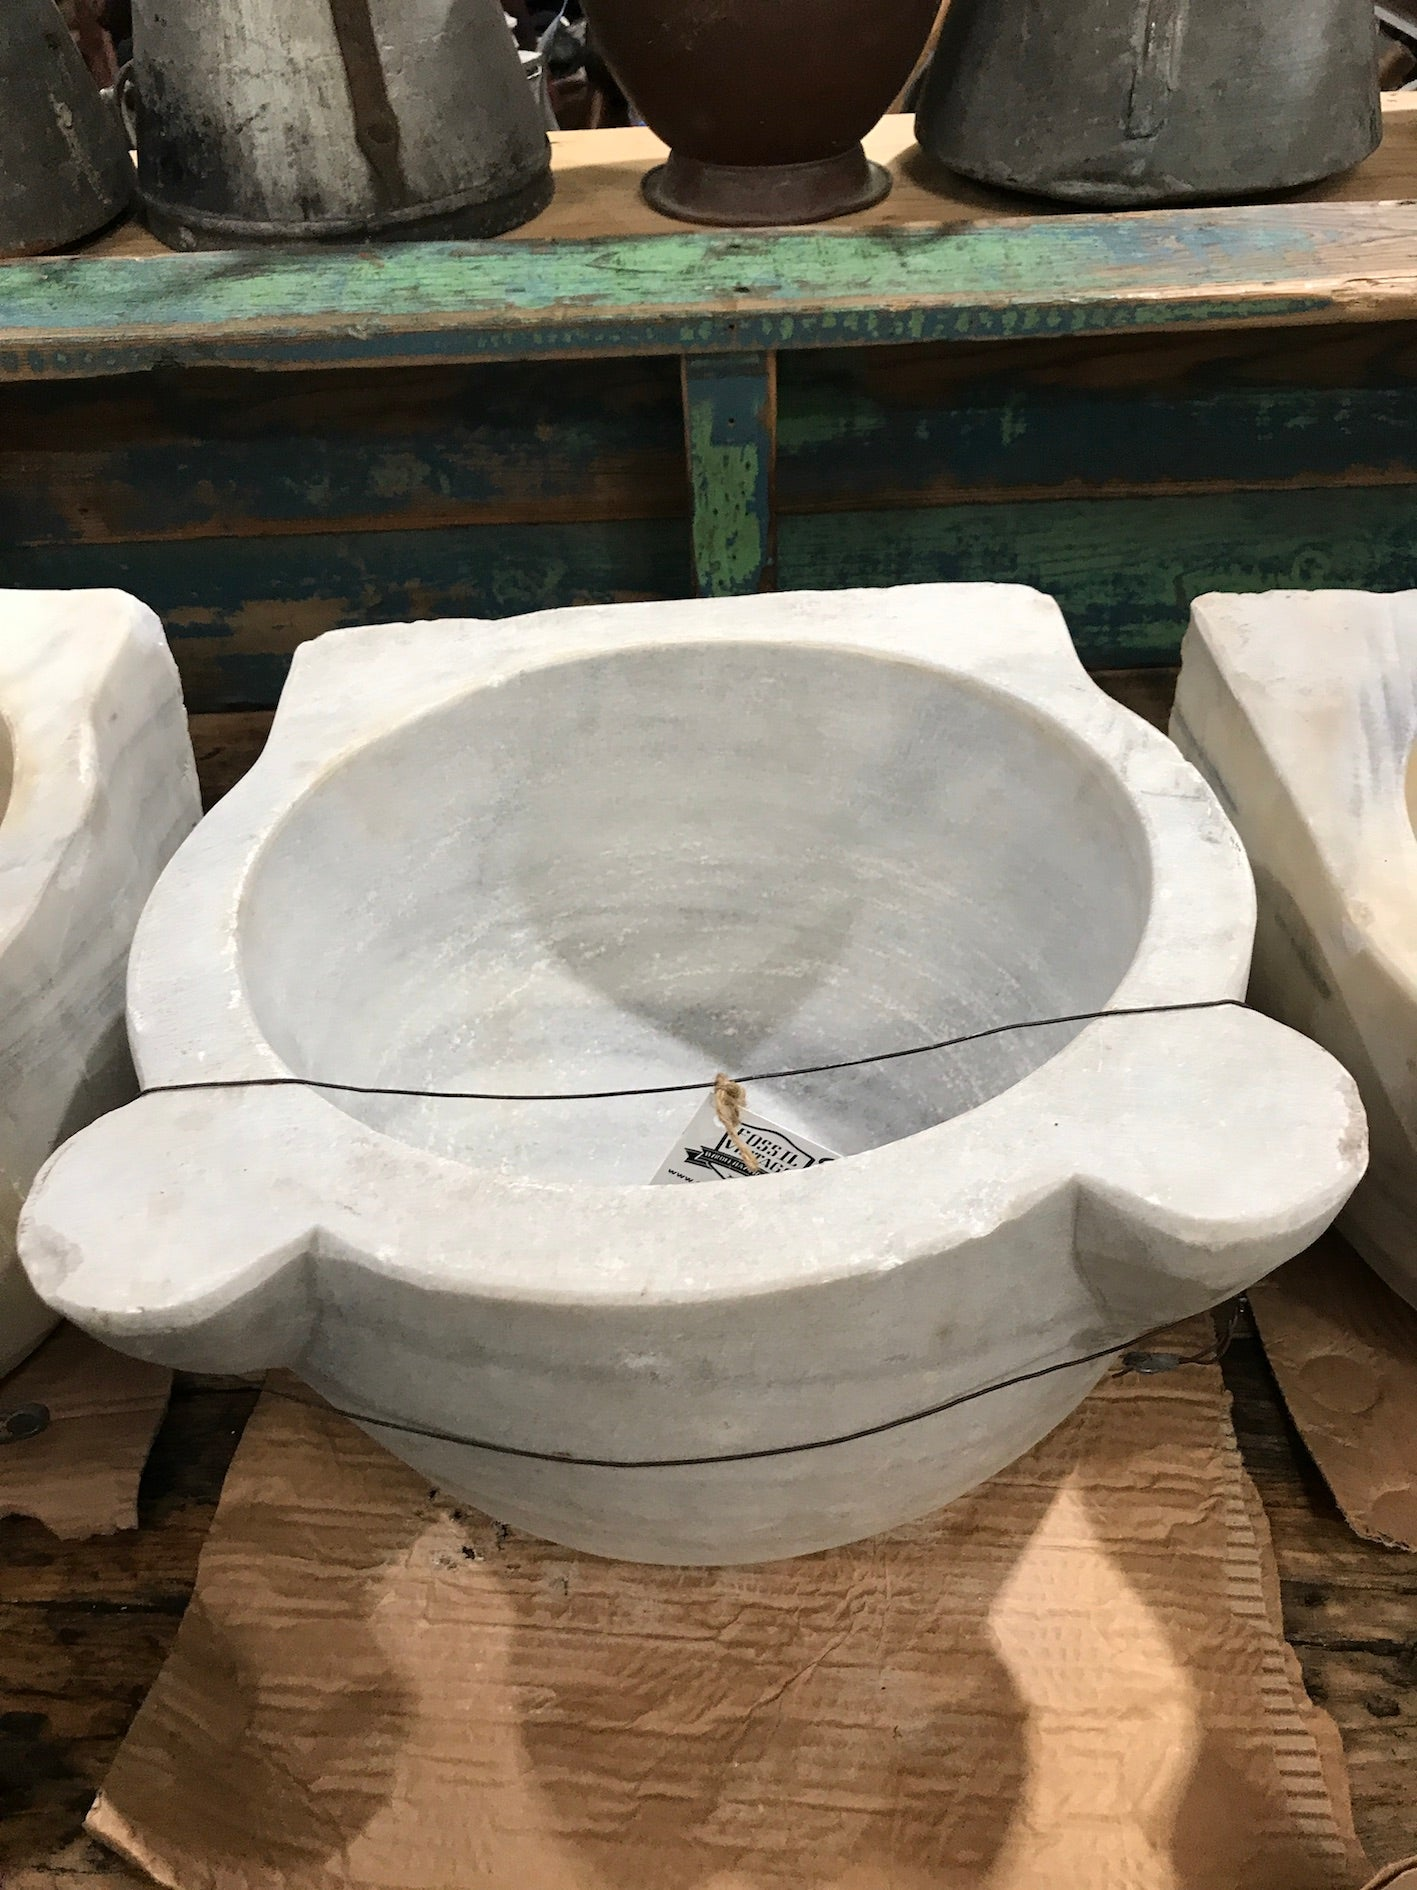 Vintage industrial Turkish Marble sink #2343/c